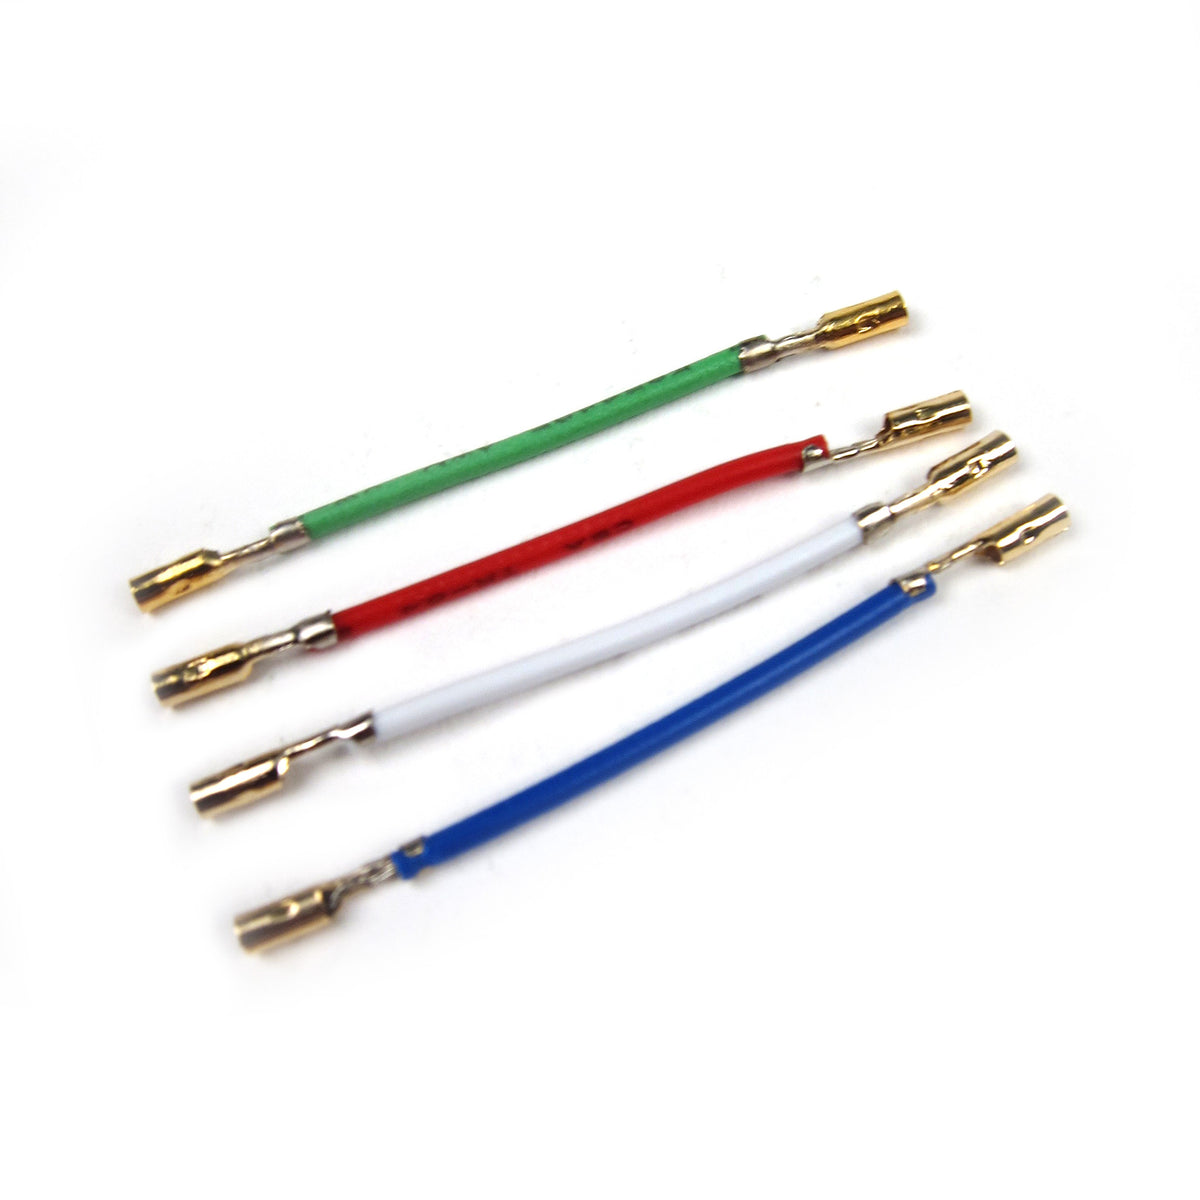 Record Supply Co.: Headshell Lead Wires - Gold